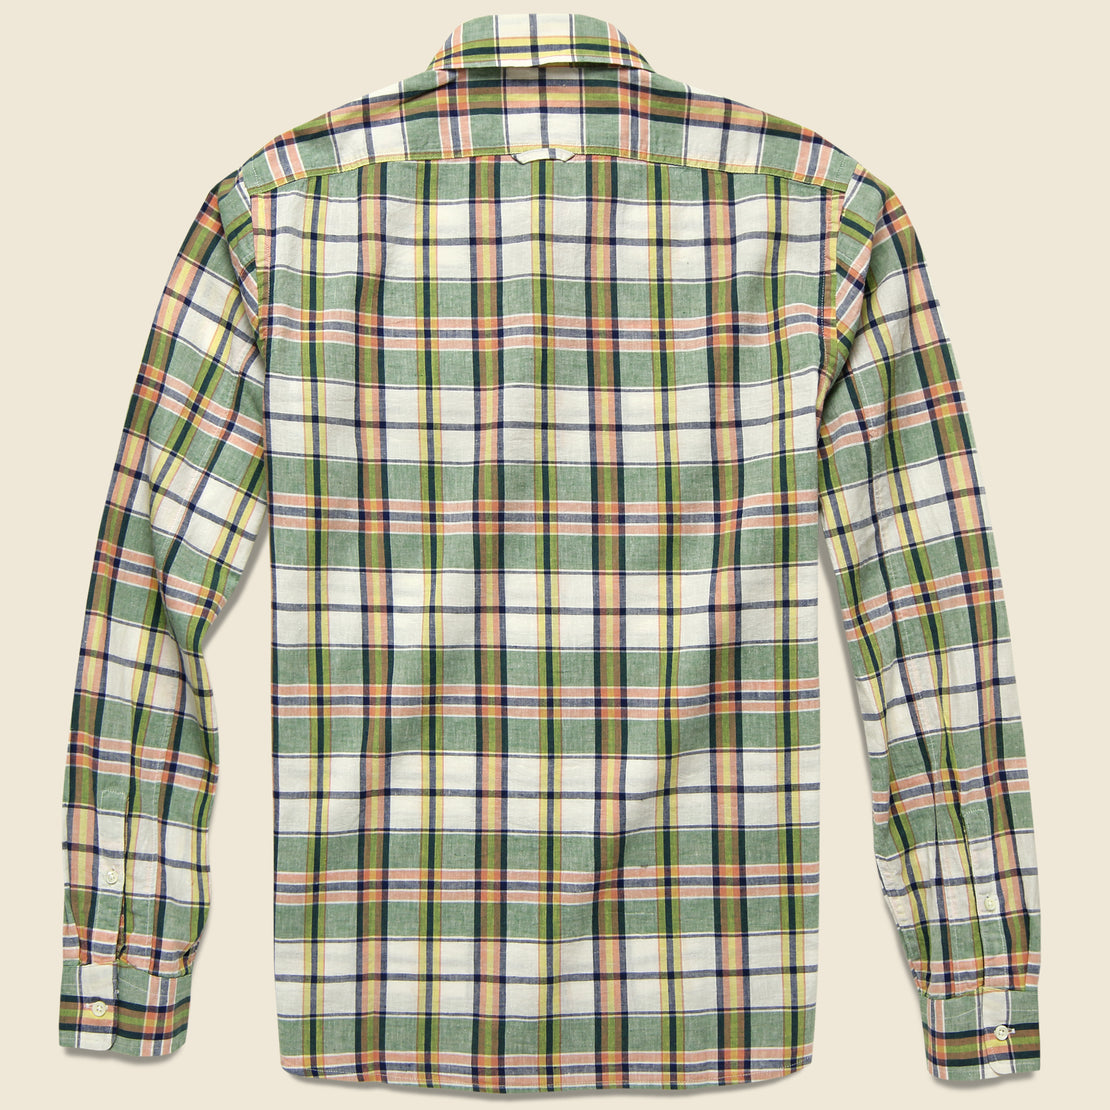 Spring Shirt - Green/Off-White